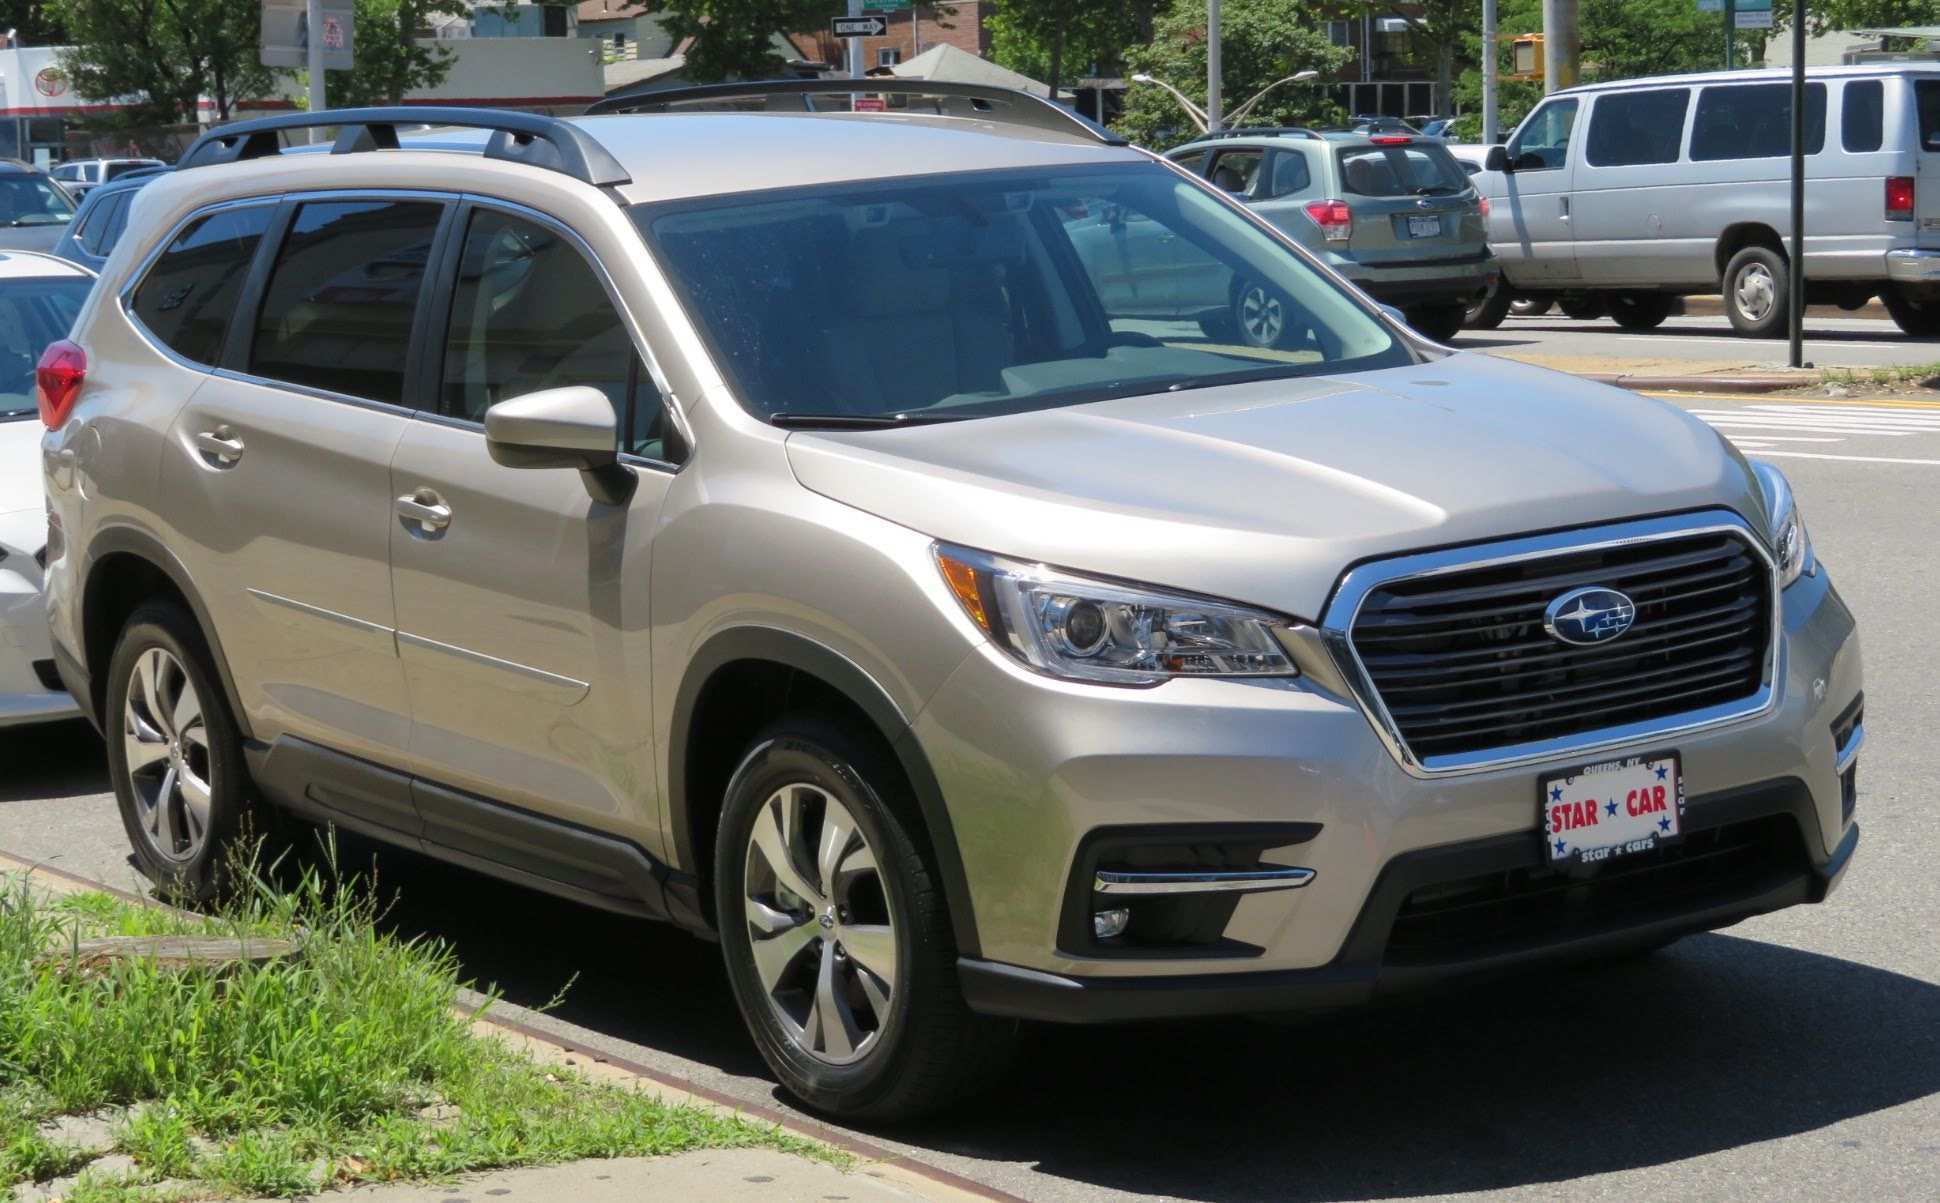 20 All New The Subaru 2019 Pickup Specs Images for The Subaru 2019 Pickup Specs